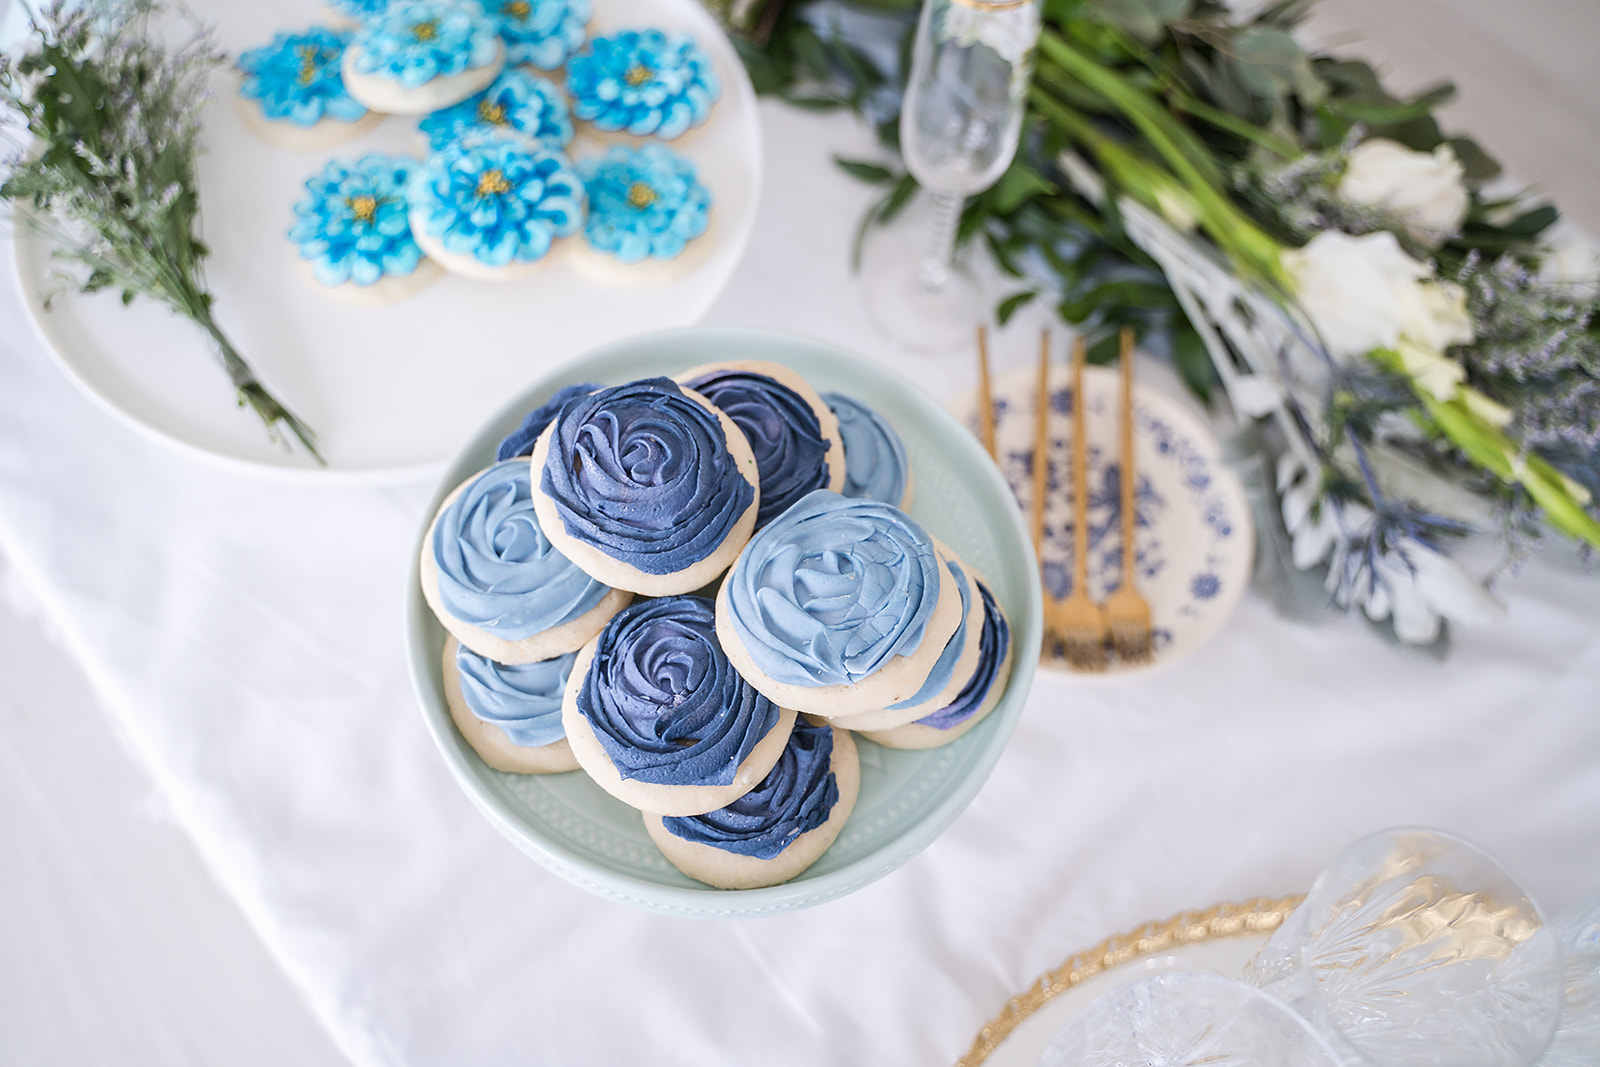 light blue and dark blue rosette sugar cookies